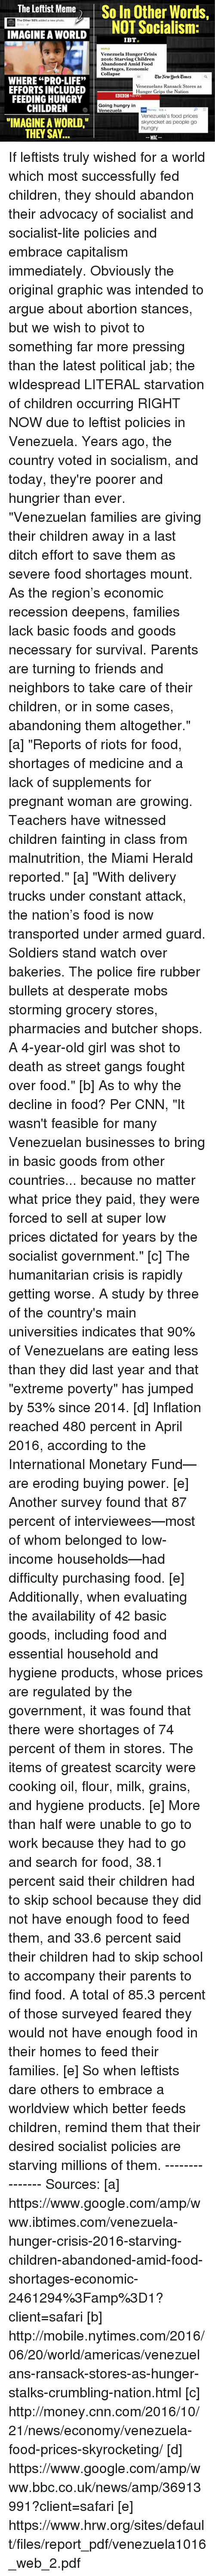 """Dictater: The Leftist Meme  So In Other Words,  The other 98% added a new photo.  NOT Socialism:  IMAGINE A WORLD  IBT.  Venezuela Hunger Crisis  2016: Starving Children  Abandoned Amid Food  Shortages, Economic  Collapse  Elbe Aenvuork Cimes  WHERE """"PRO-LIFE""""  Venezuelans Ransack Stores as  EFFORTS INCLUDED  Hunger Grips the Nation  BBC  FEEDING HUNGRY  Going hungry in  CHILDREN  Venezuela  ON Money US.  Venezuela's food prices  """"IMAGINE A WORLD.""""  skyrocket as people go  hungry  THEY SAY  WAC If leftists truly wished for a world which most successfully fed children, they should abandon their advocacy of socialist and socialist-lite policies and embrace capitalism immediately. Obviously the original graphic was intended to argue about abortion stances, but we wish to pivot to something far more pressing than the latest political jab; the wIdespread LITERAL starvation of children occurring RIGHT NOW due to leftist policies in Venezuela. Years ago, the country voted in socialism, and today, they're poorer and hungrier than ever.   """"Venezuelan families are giving their children away in a last ditch effort to save them as severe food shortages mount. As the region's economic recession deepens, families lack basic foods and goods necessary for survival. Parents are turning to friends and neighbors to take care of their children, or in some cases, abandoning them altogether."""" [a]  """"Reports of riots for food, shortages of medicine and a lack of supplements for pregnant woman are growing. Teachers have witnessed children fainting in class from malnutrition, the Miami Herald reported."""" [a]  """"With delivery trucks under constant attack, the nation's food is now transported under armed guard. Soldiers stand watch over bakeries. The police fire rubber bullets at desperate mobs storming grocery stores, pharmacies and butcher shops. A 4-year-old girl was shot to death as street gangs fought over food."""" [b]  As to why the decline in food? Per CNN, """"It wasn't feasible for many Vene"""